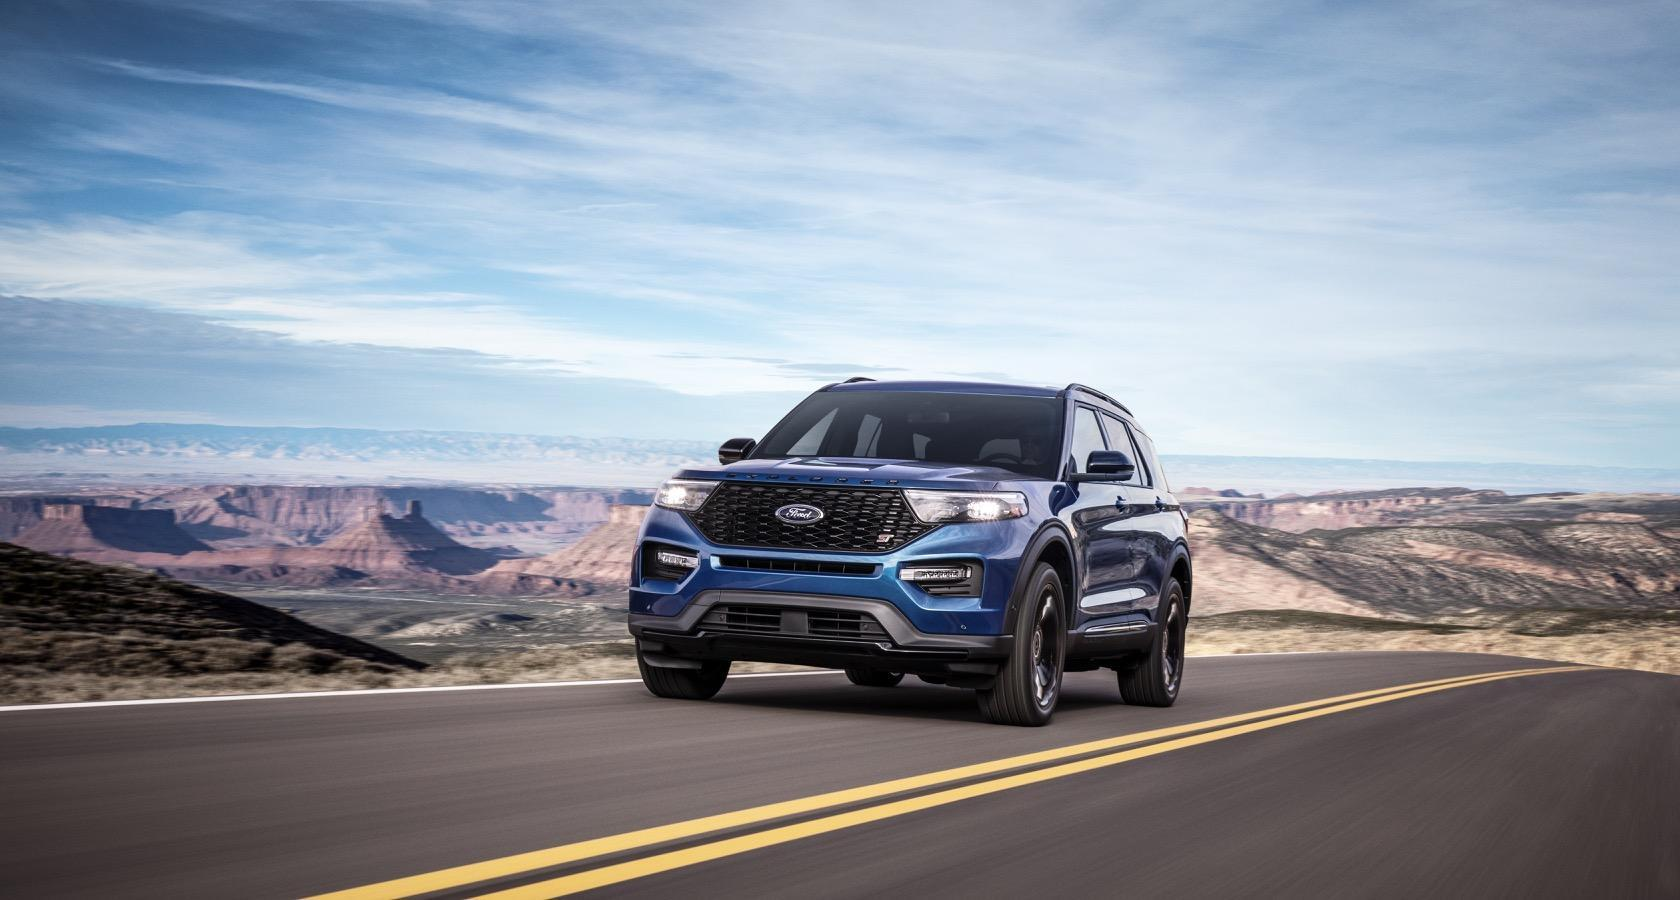 Ford Explorer Roof Rack >> 2020 Ford Explorer ST and Explorer Hybrid bring power and electric to Detroit - SlashGear